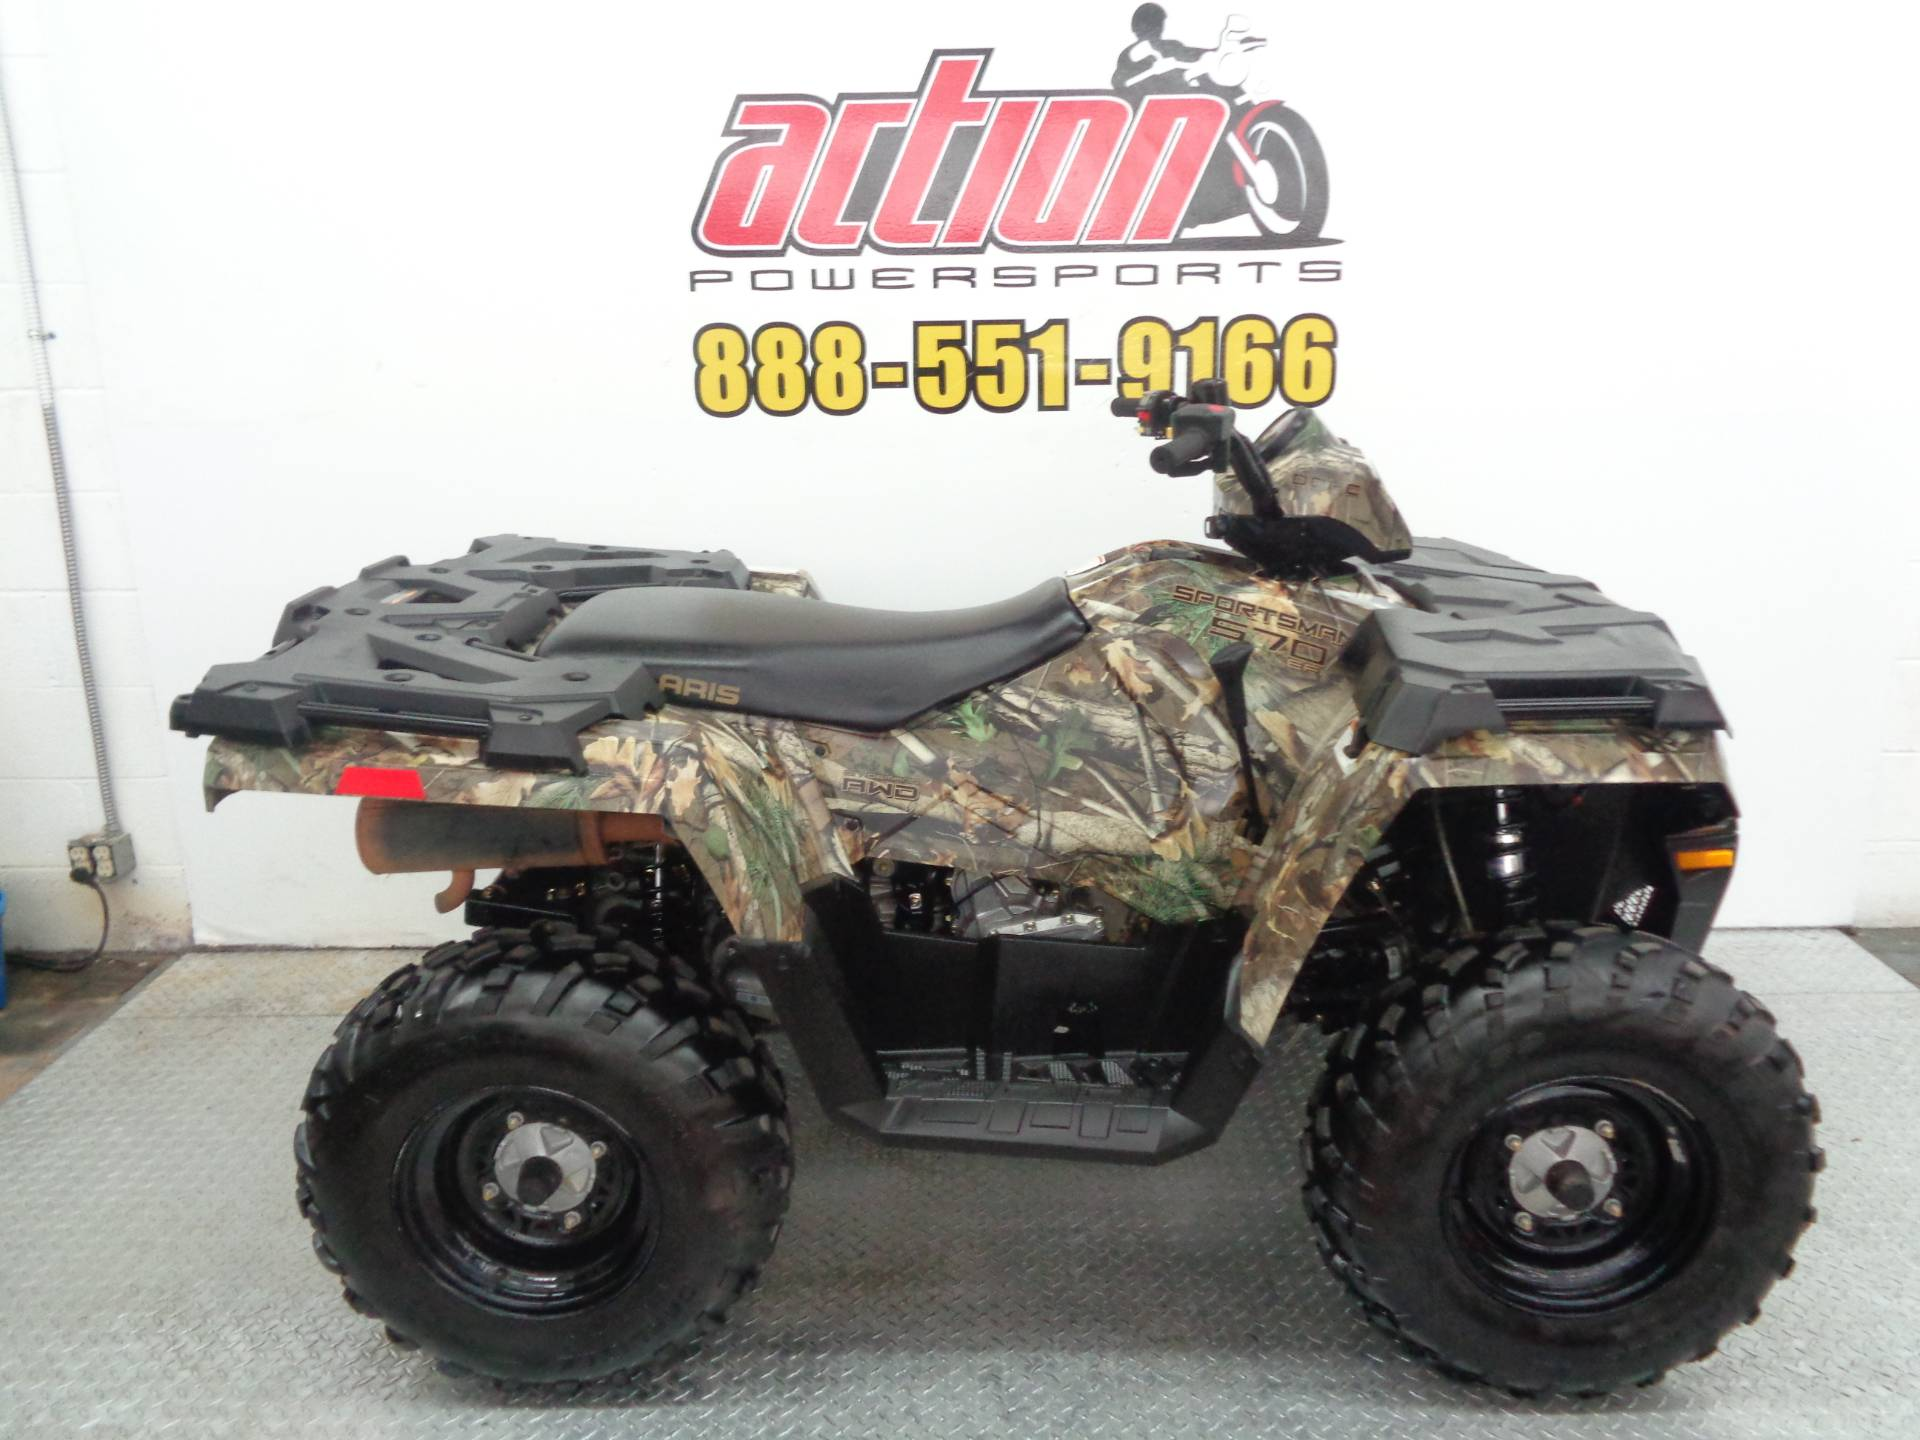 2015 Polaris Sportsman® 570 in Tulsa, Oklahoma - Photo 1